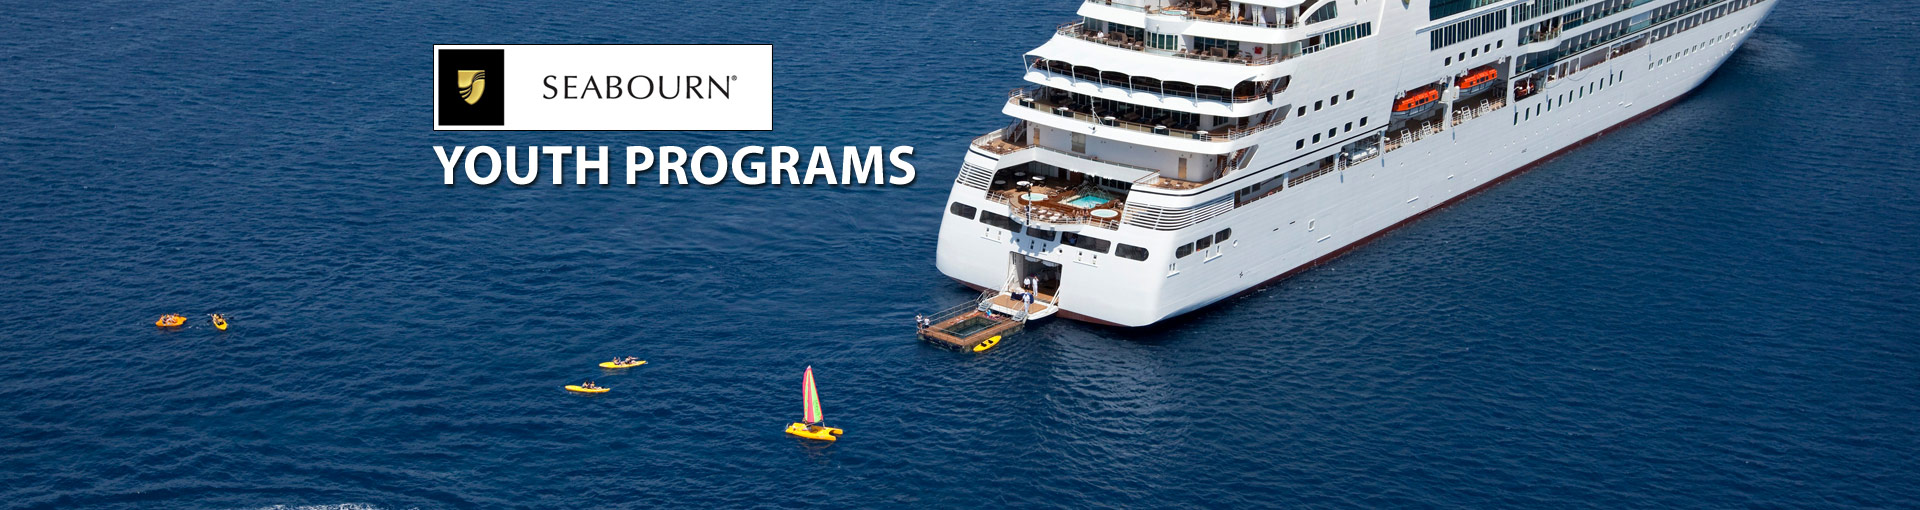 Seabourn Cruise Line Youth Programs